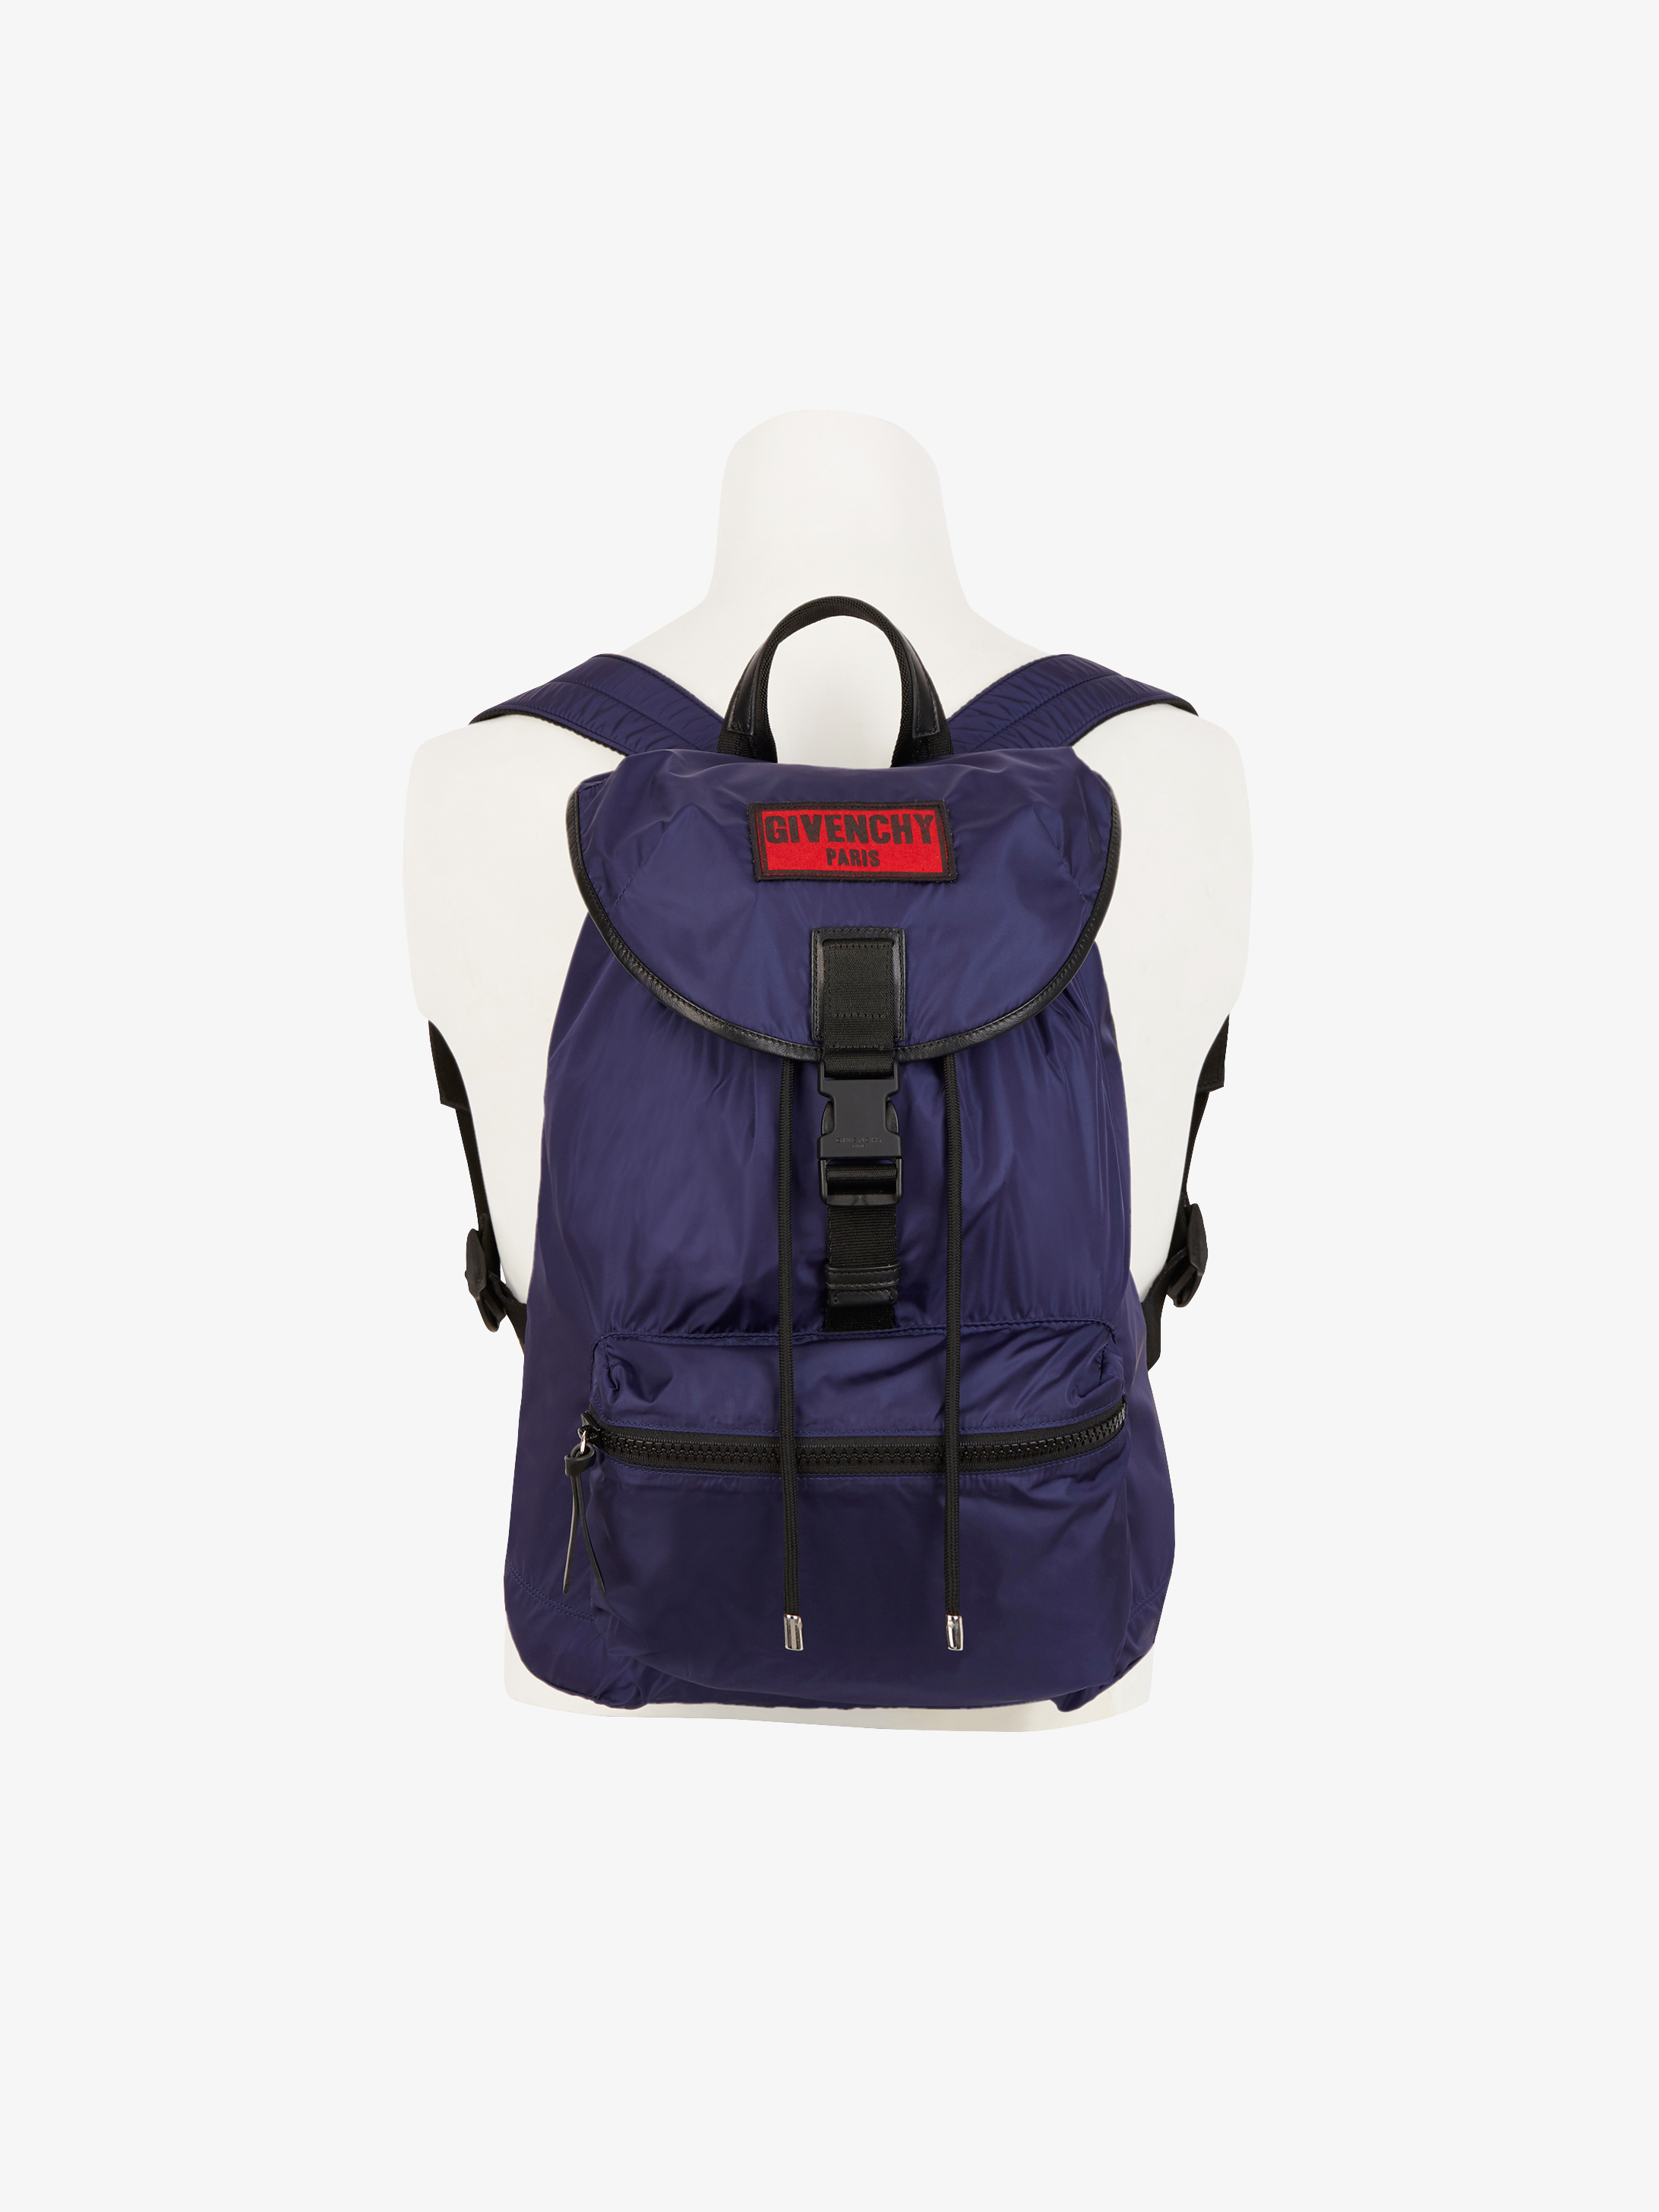 Pack-away GIVENCHY PARIS backpack